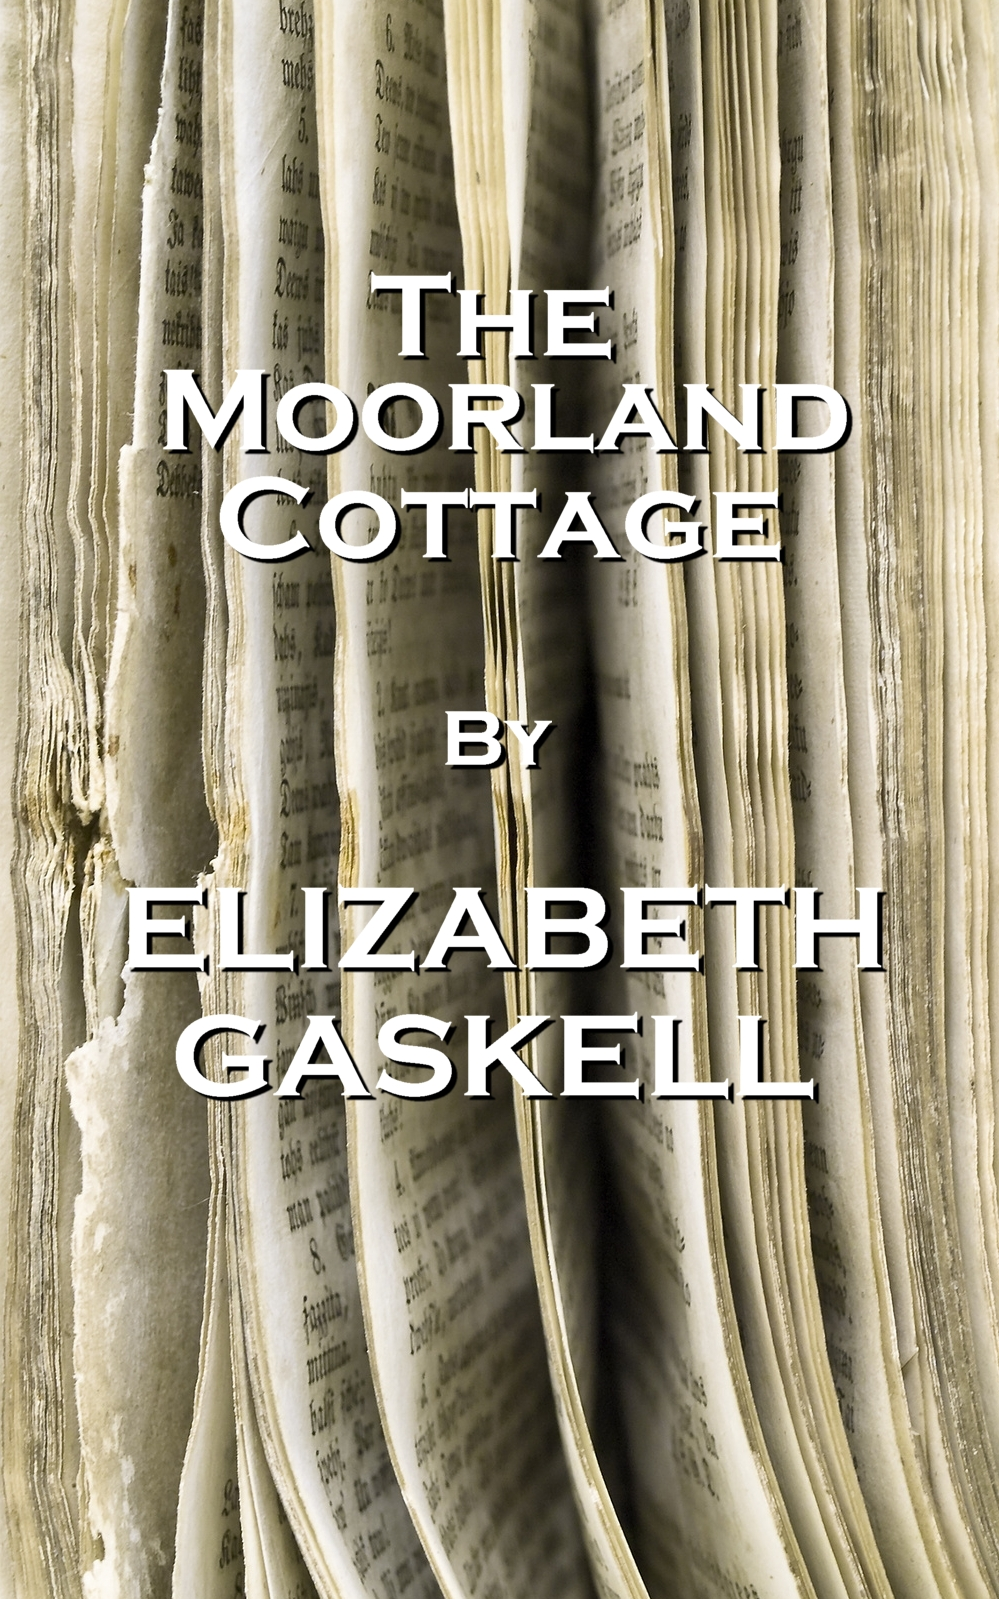 The Moorland Cottage, By Elizabeth Gaskell